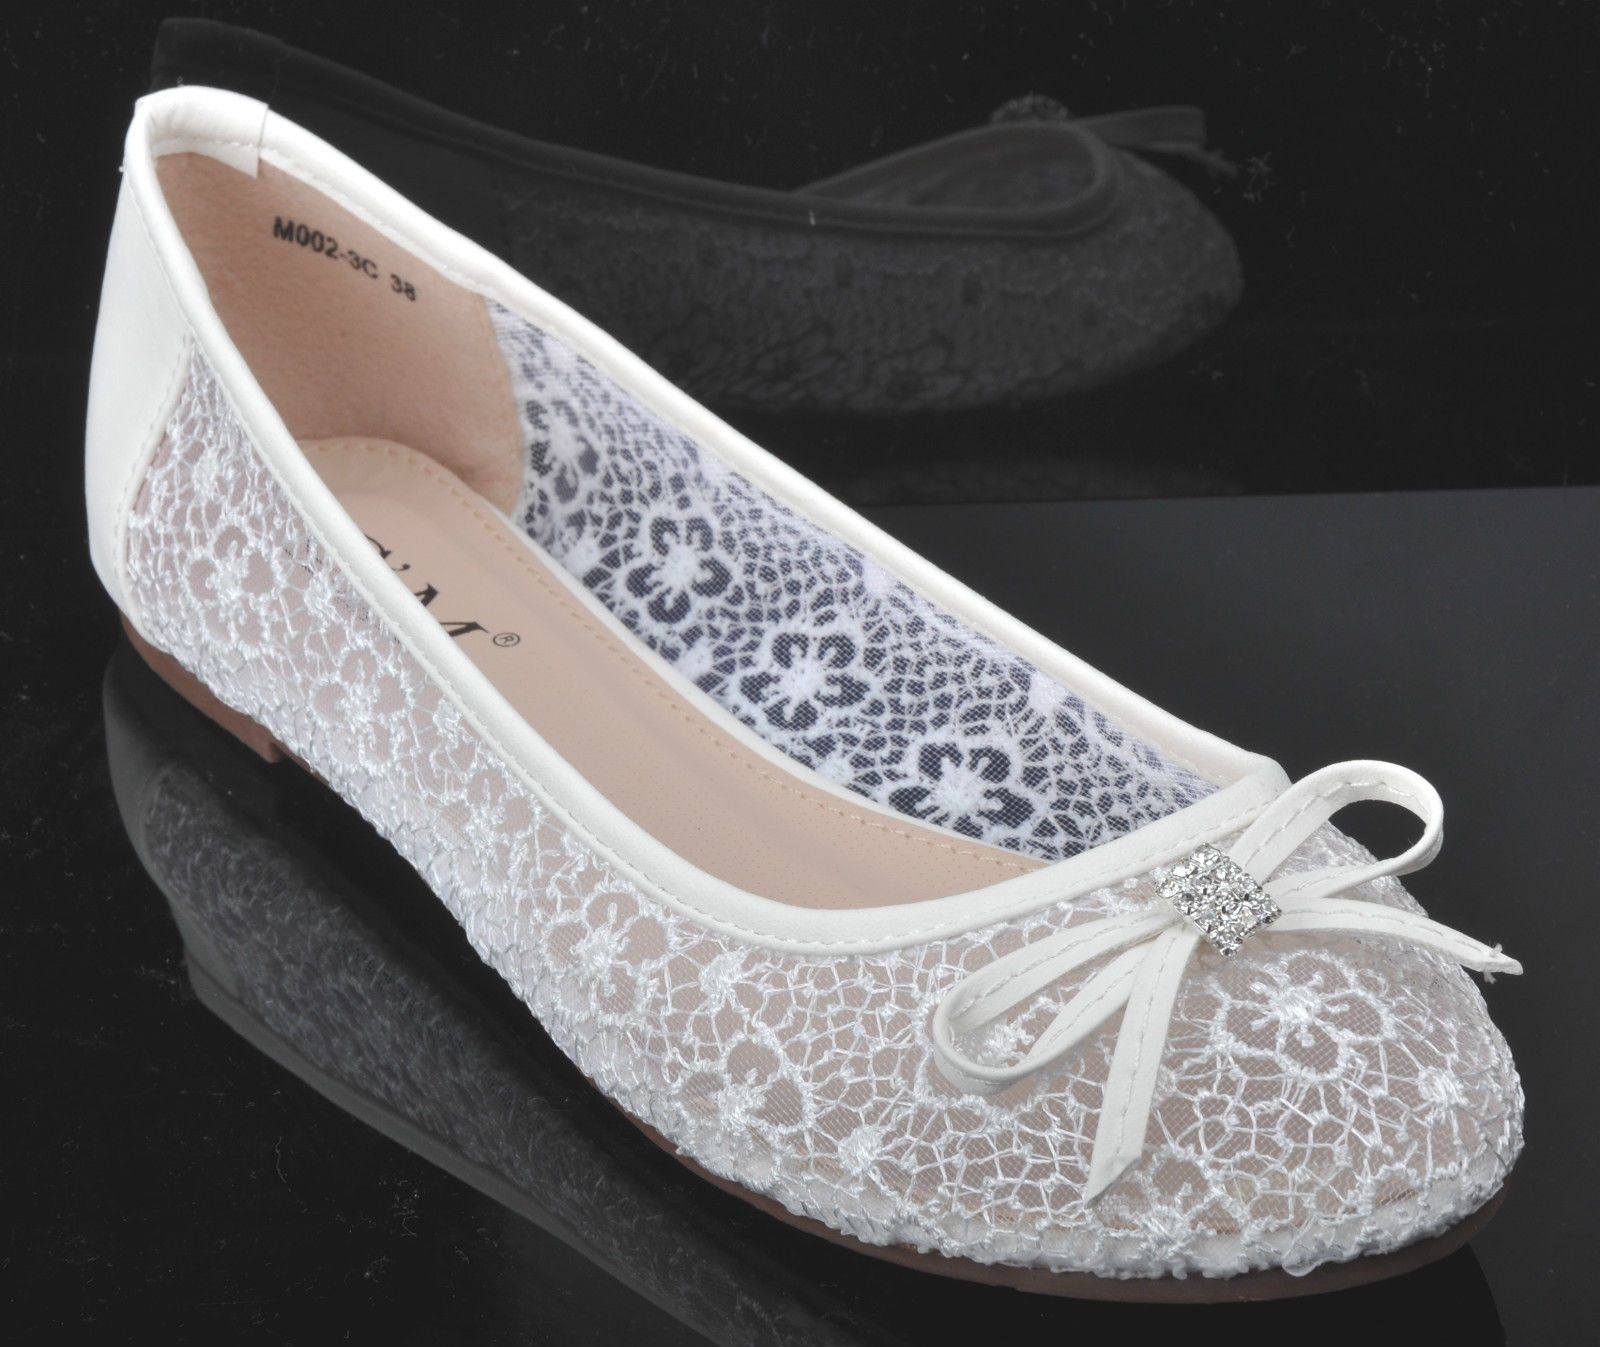 off dentelle blanche strass mariage ballerines mari e chaussures plates uk 3 4 5 ebay. Black Bedroom Furniture Sets. Home Design Ideas